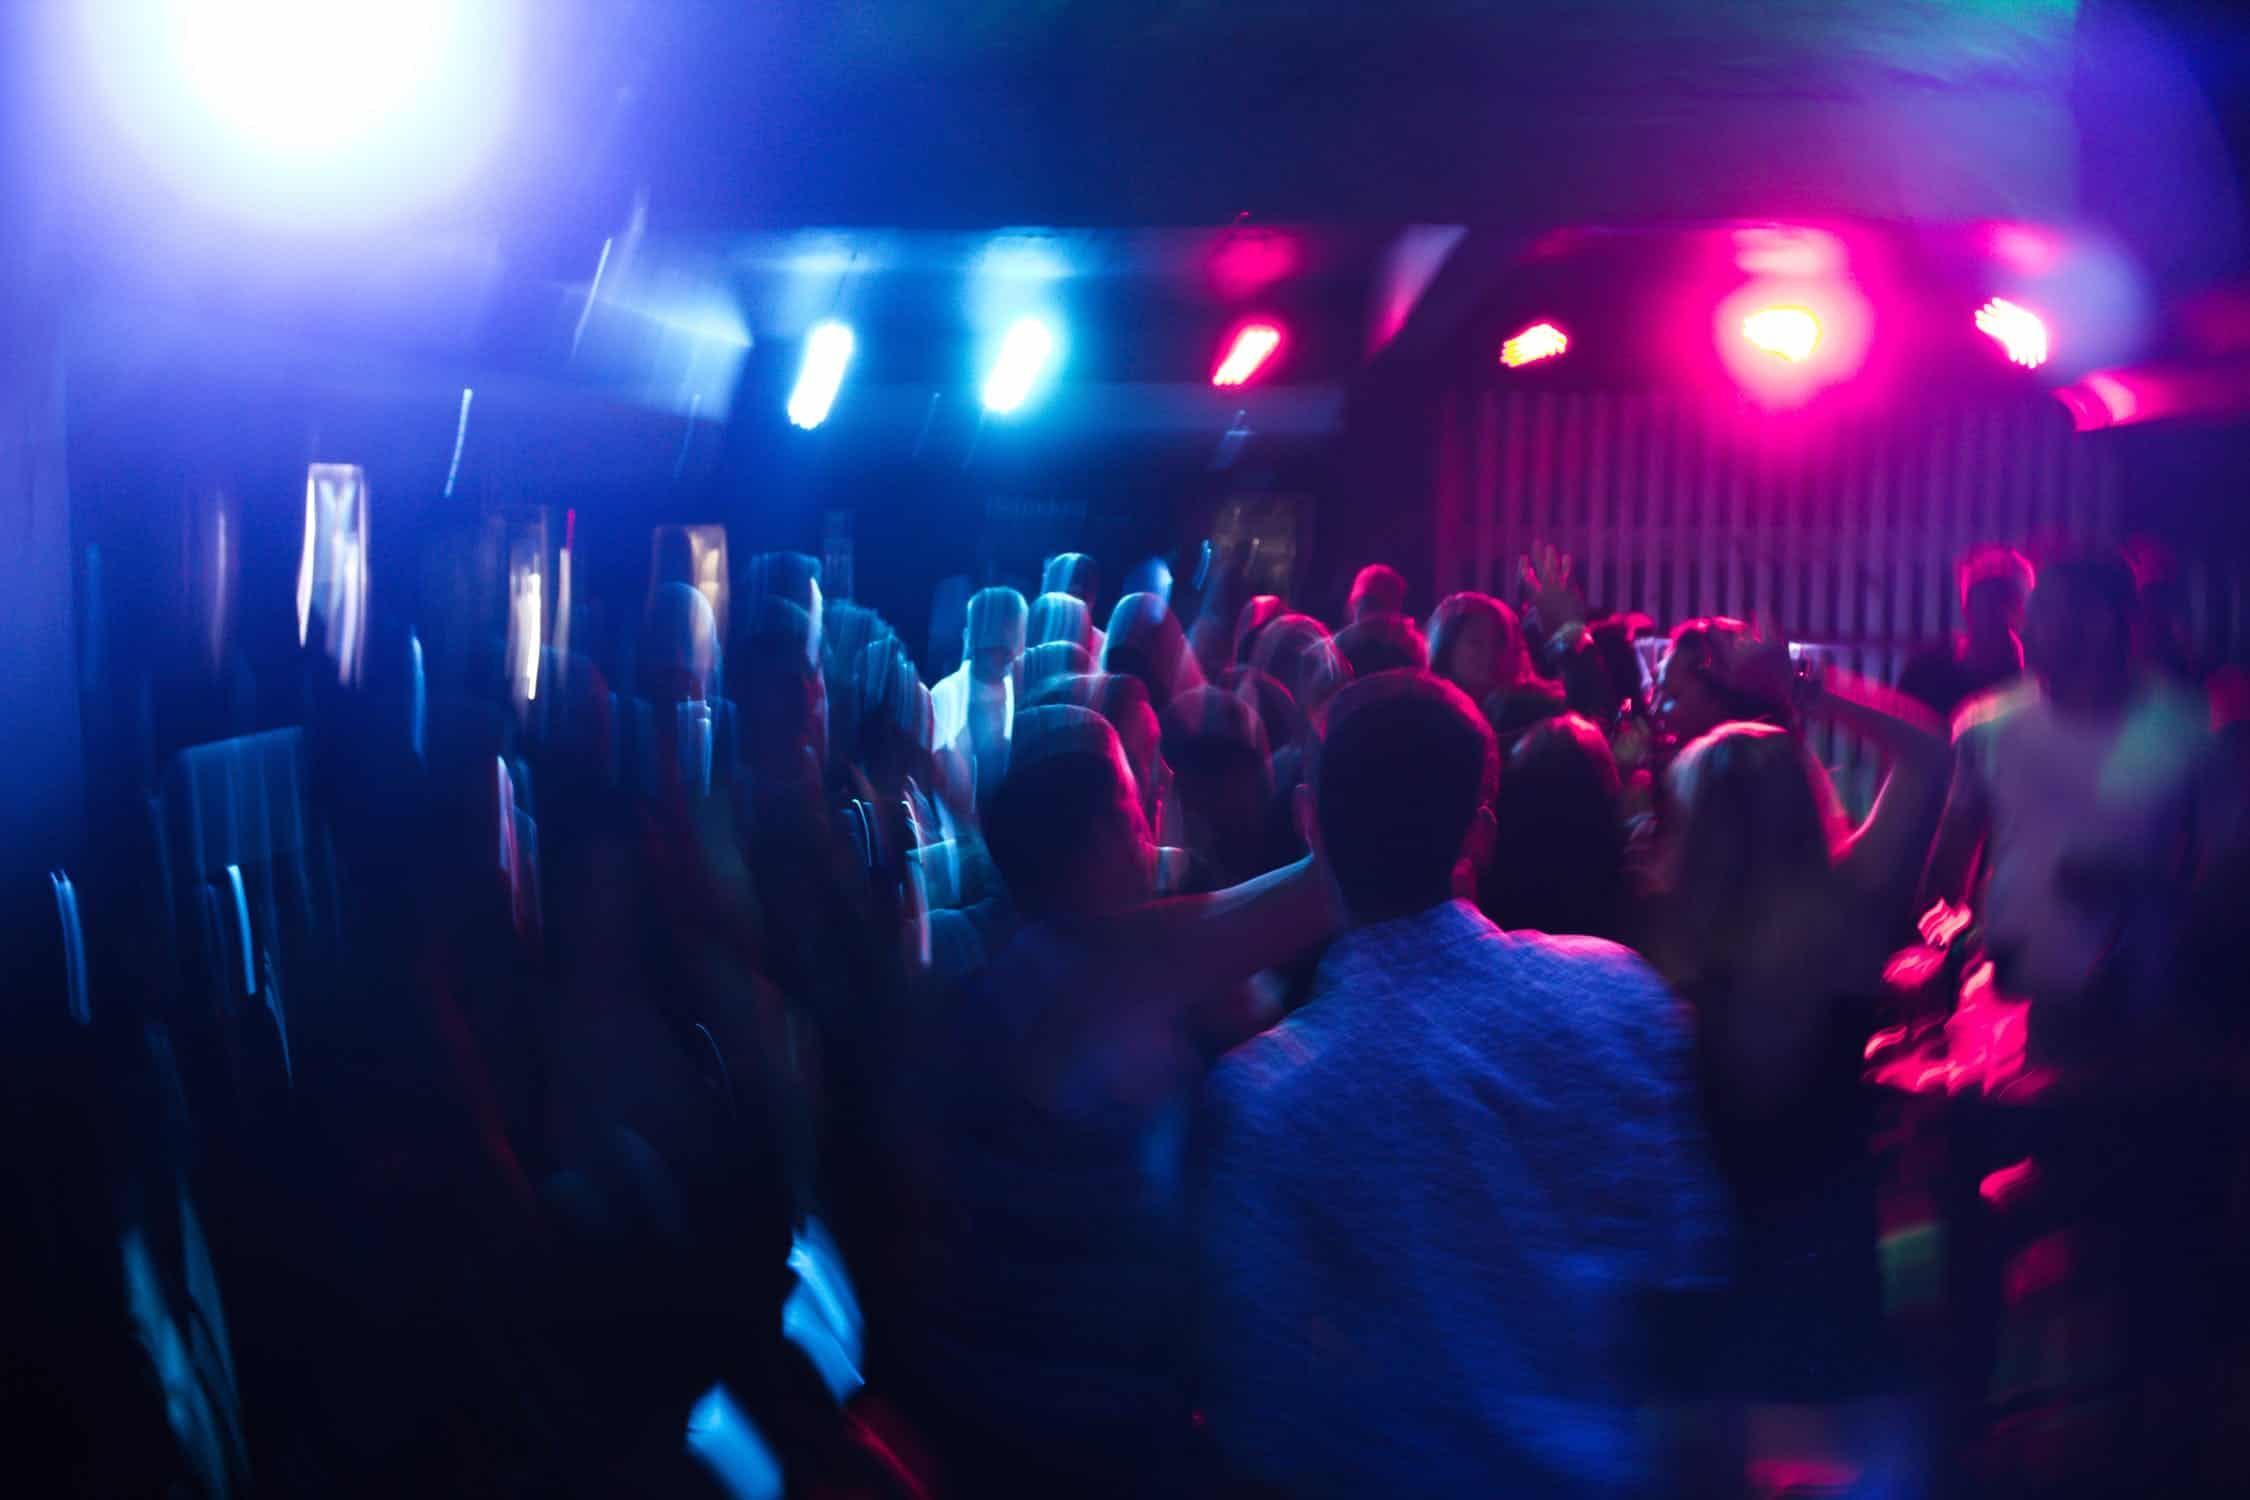 How to Get Yourself Out of Trouble When Partying Becomes a Problem